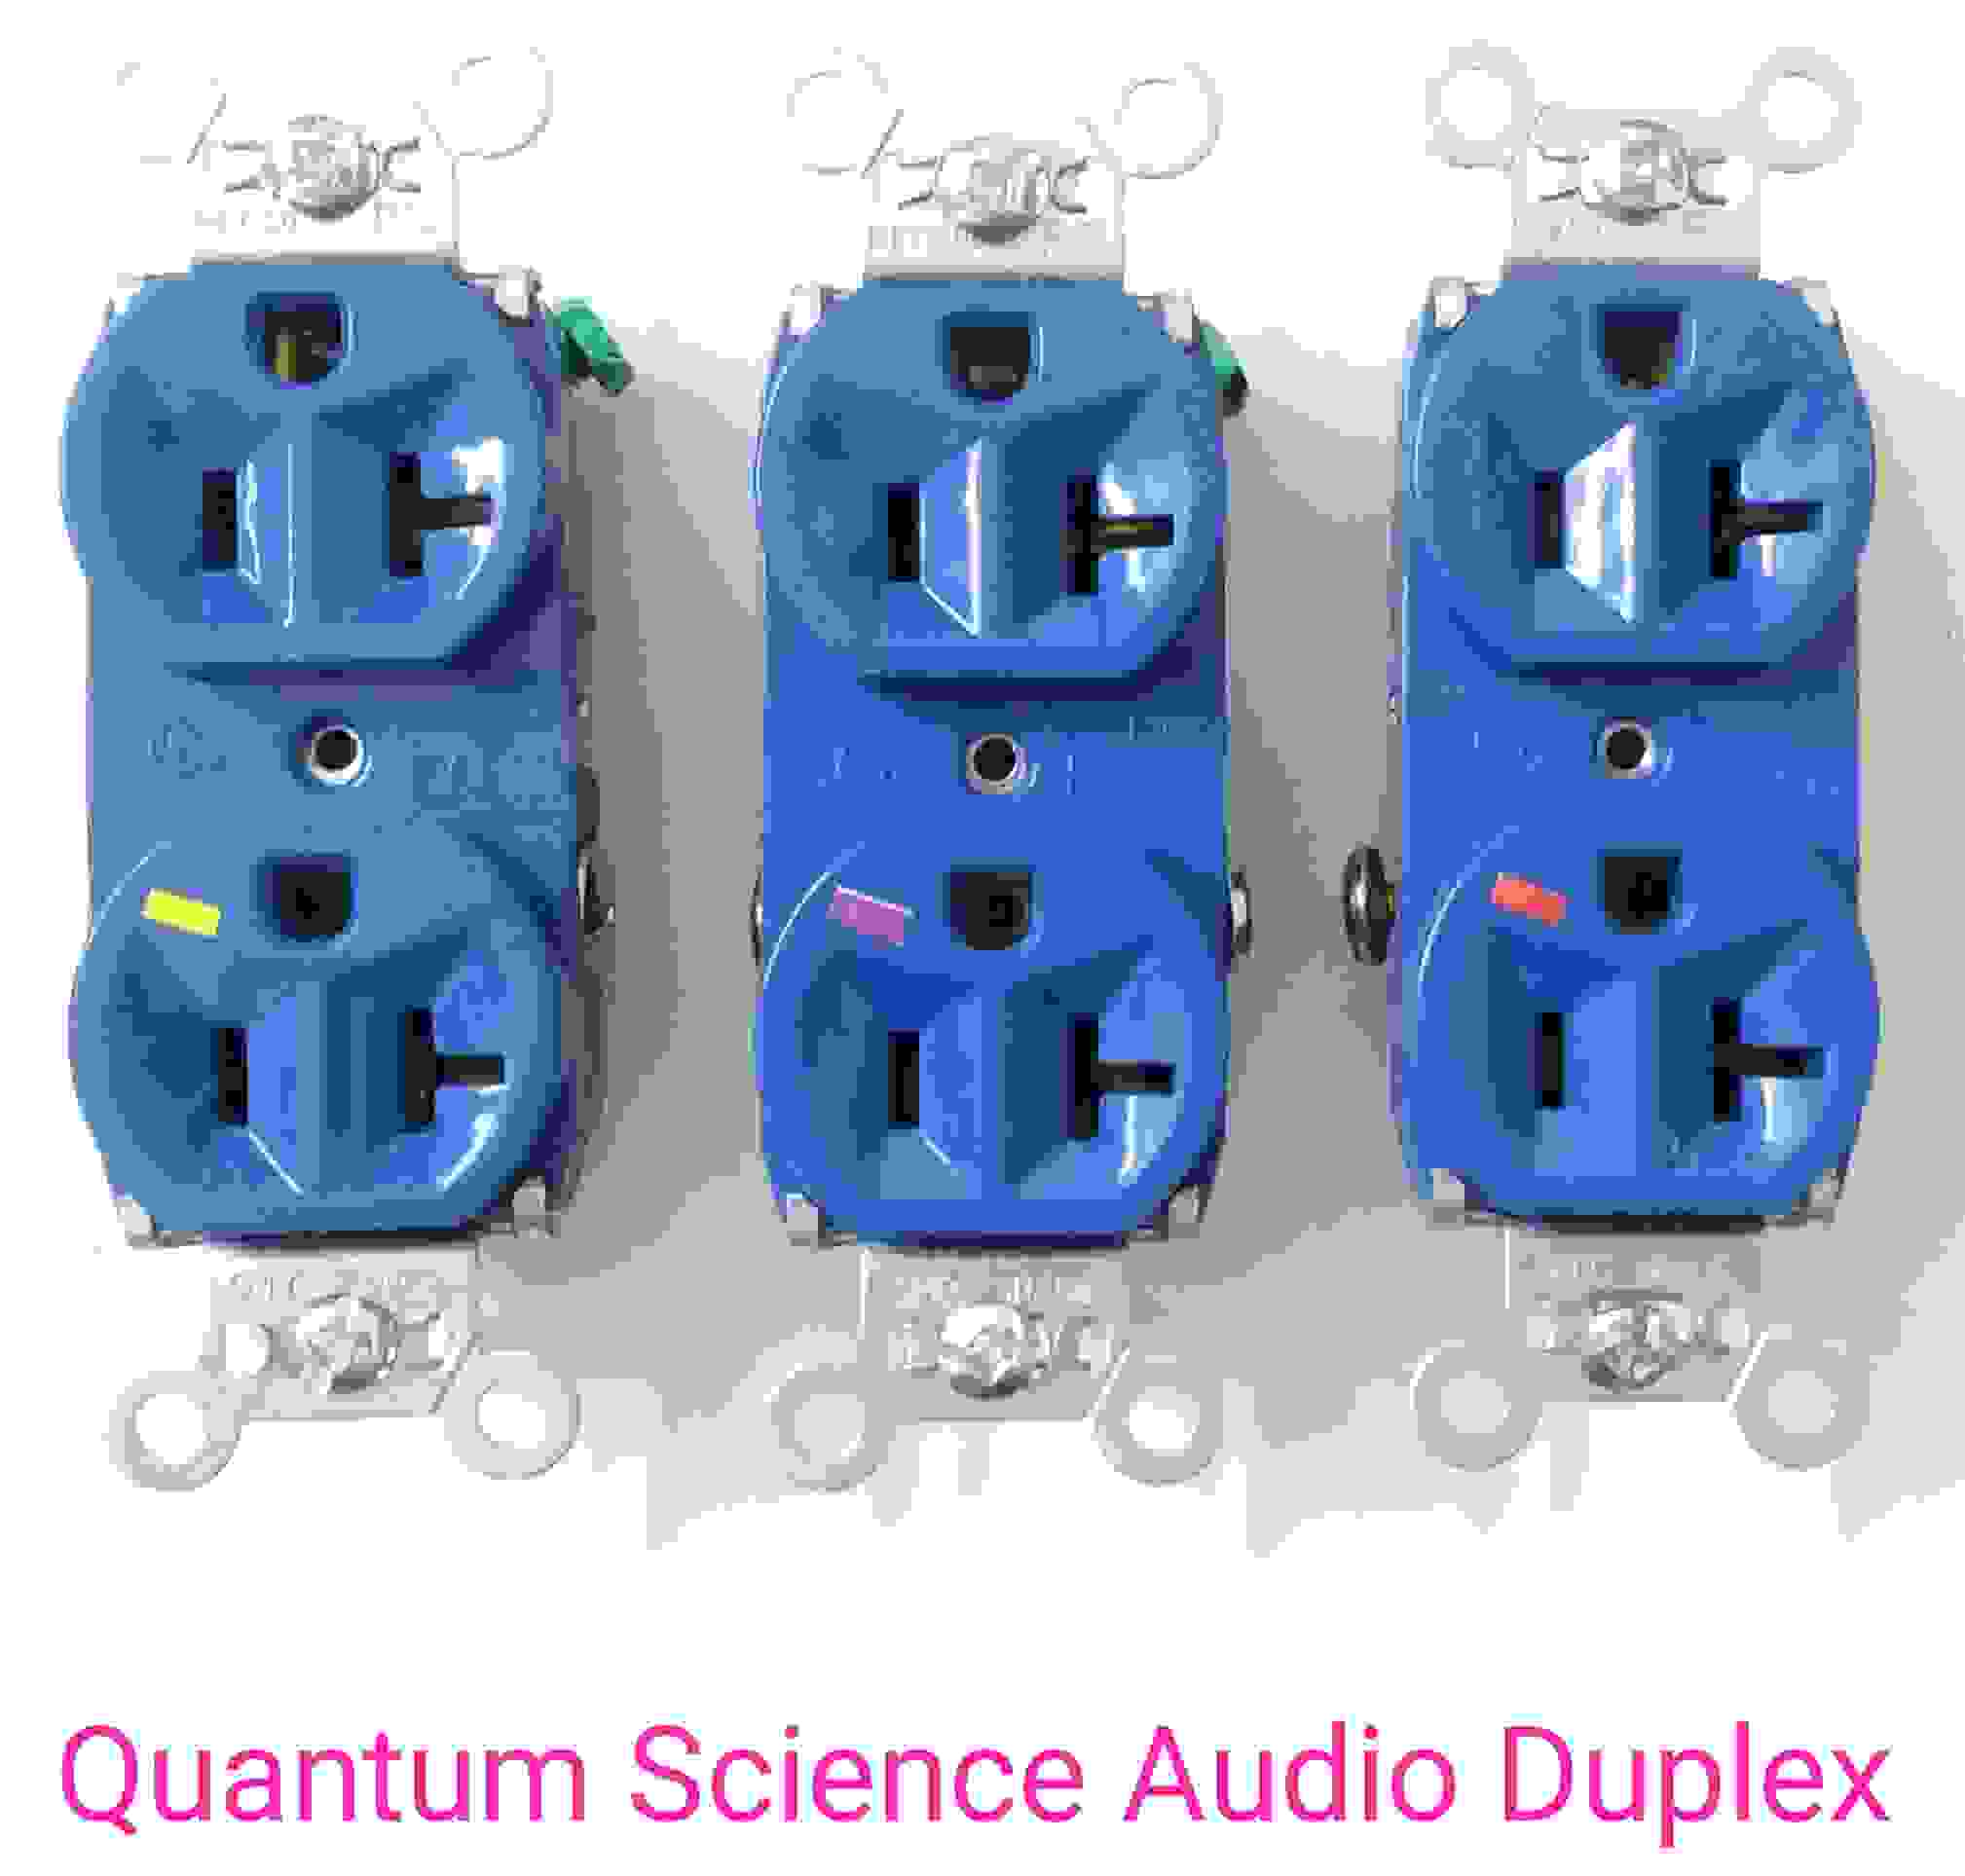 Quantum-science-audio (QS audio for short) The latest three levels of yellow yellow, Violet purple a